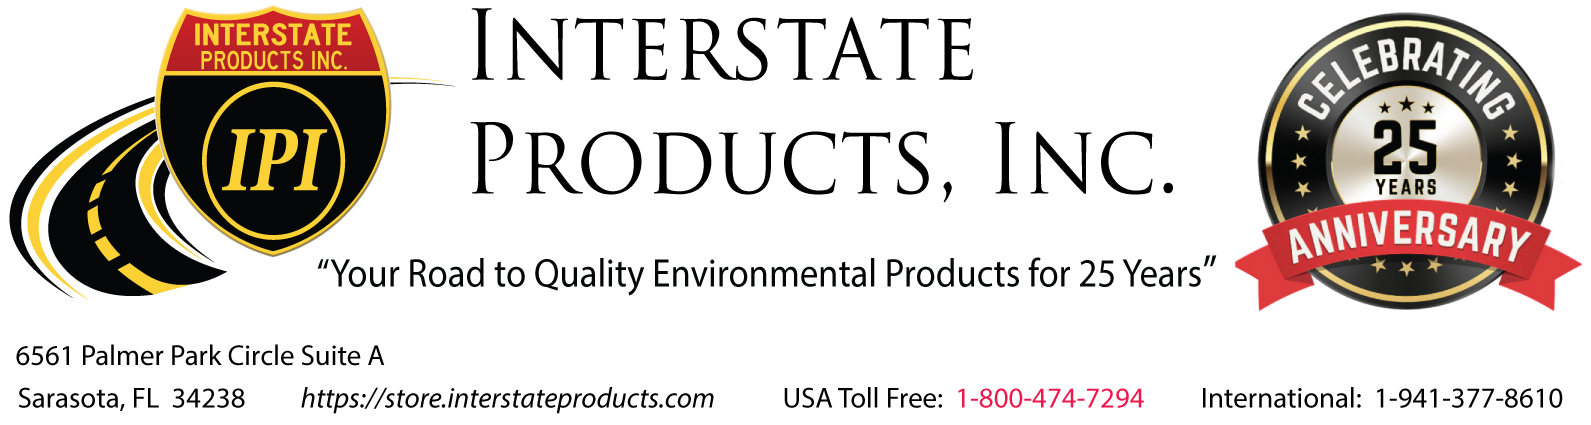 Interstate Products